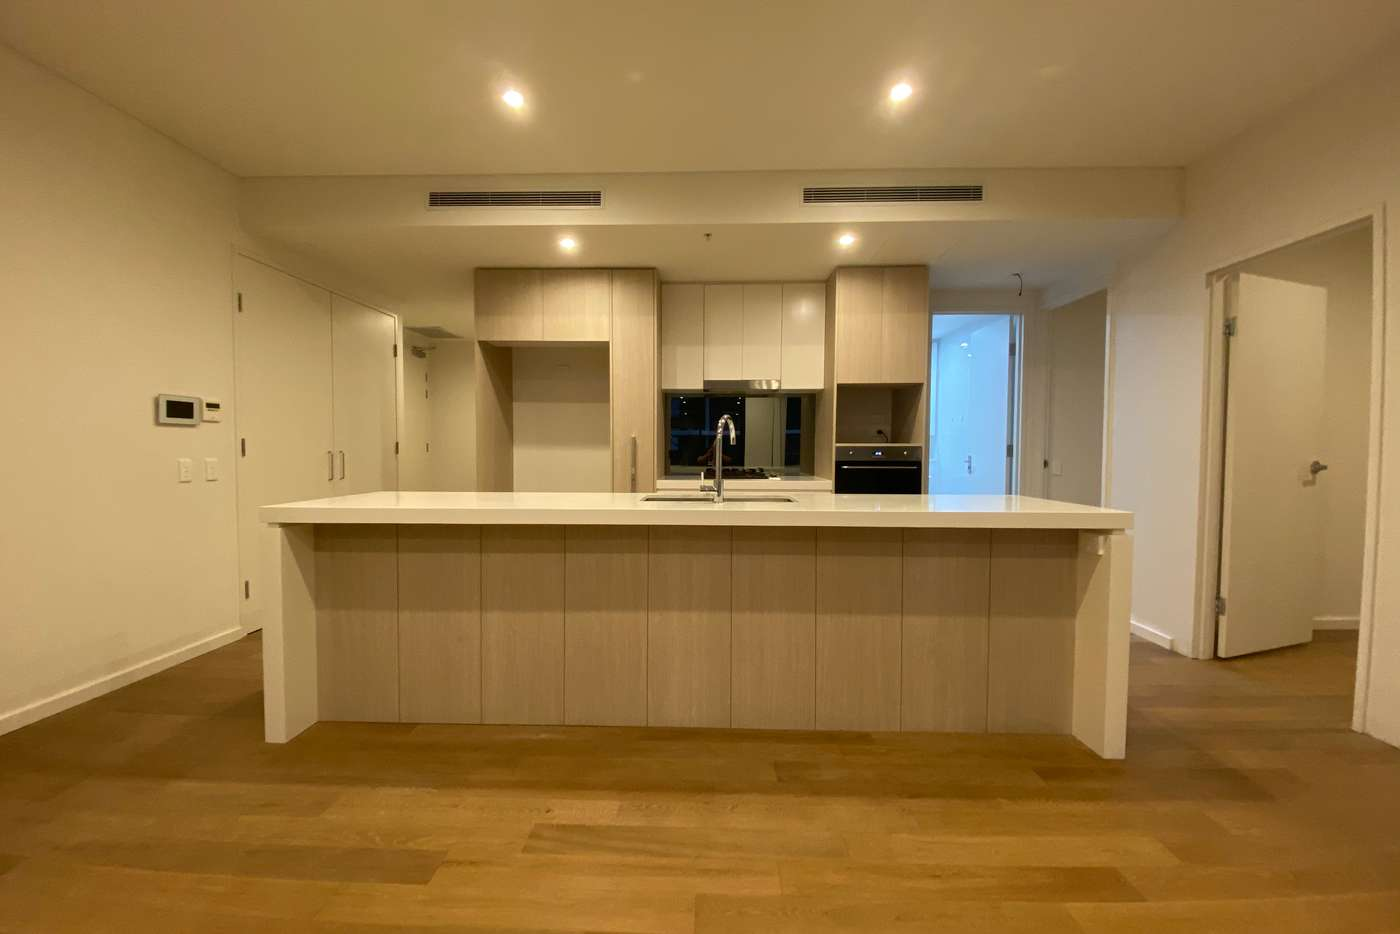 Main view of Homely apartment listing, 404/1 Muller Lane, Mascot NSW 2020